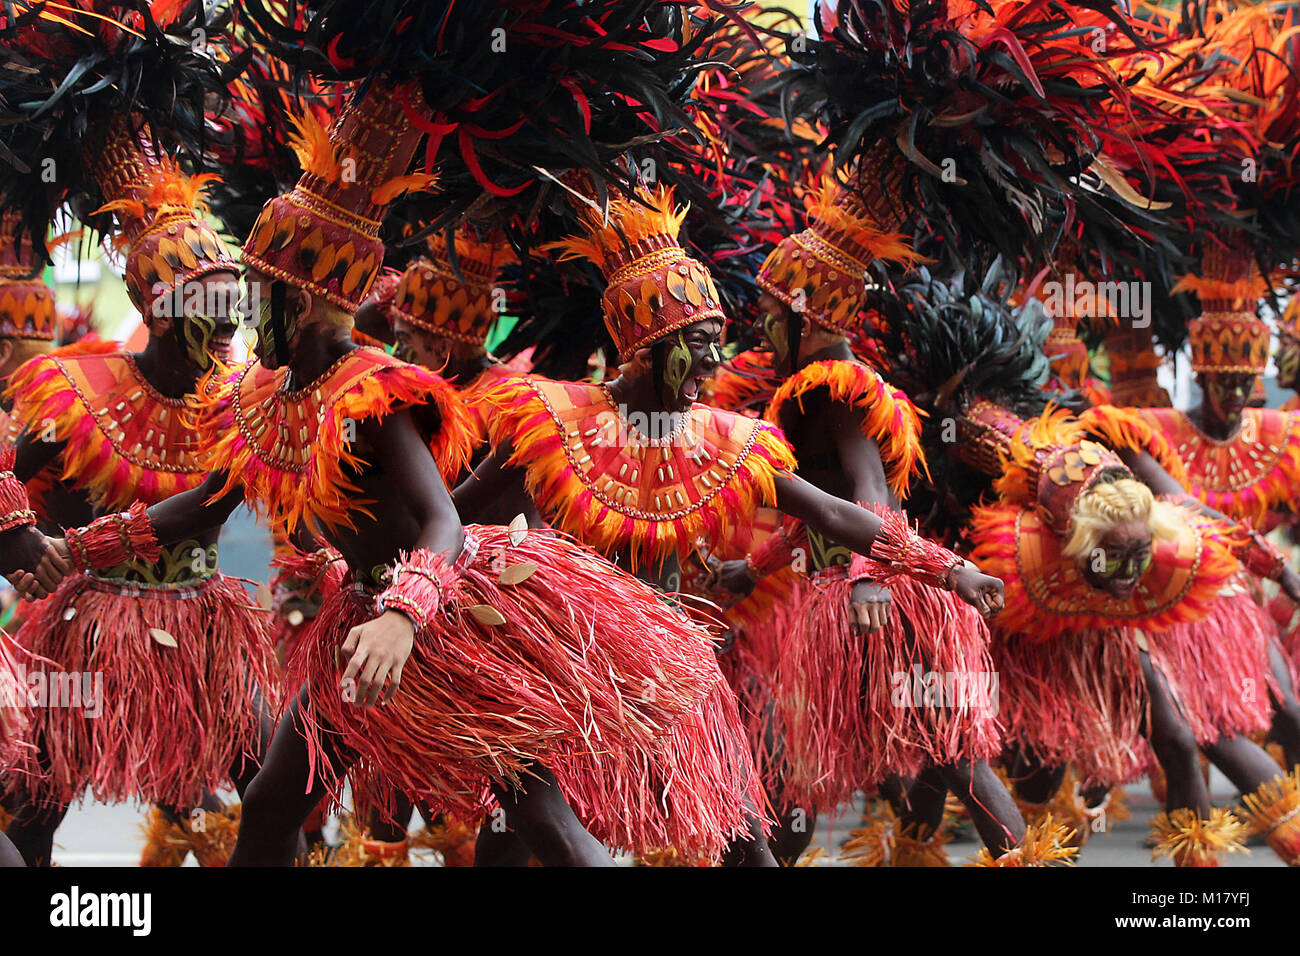 Dinagyang Festival in Iloilo City, Philippines 2019